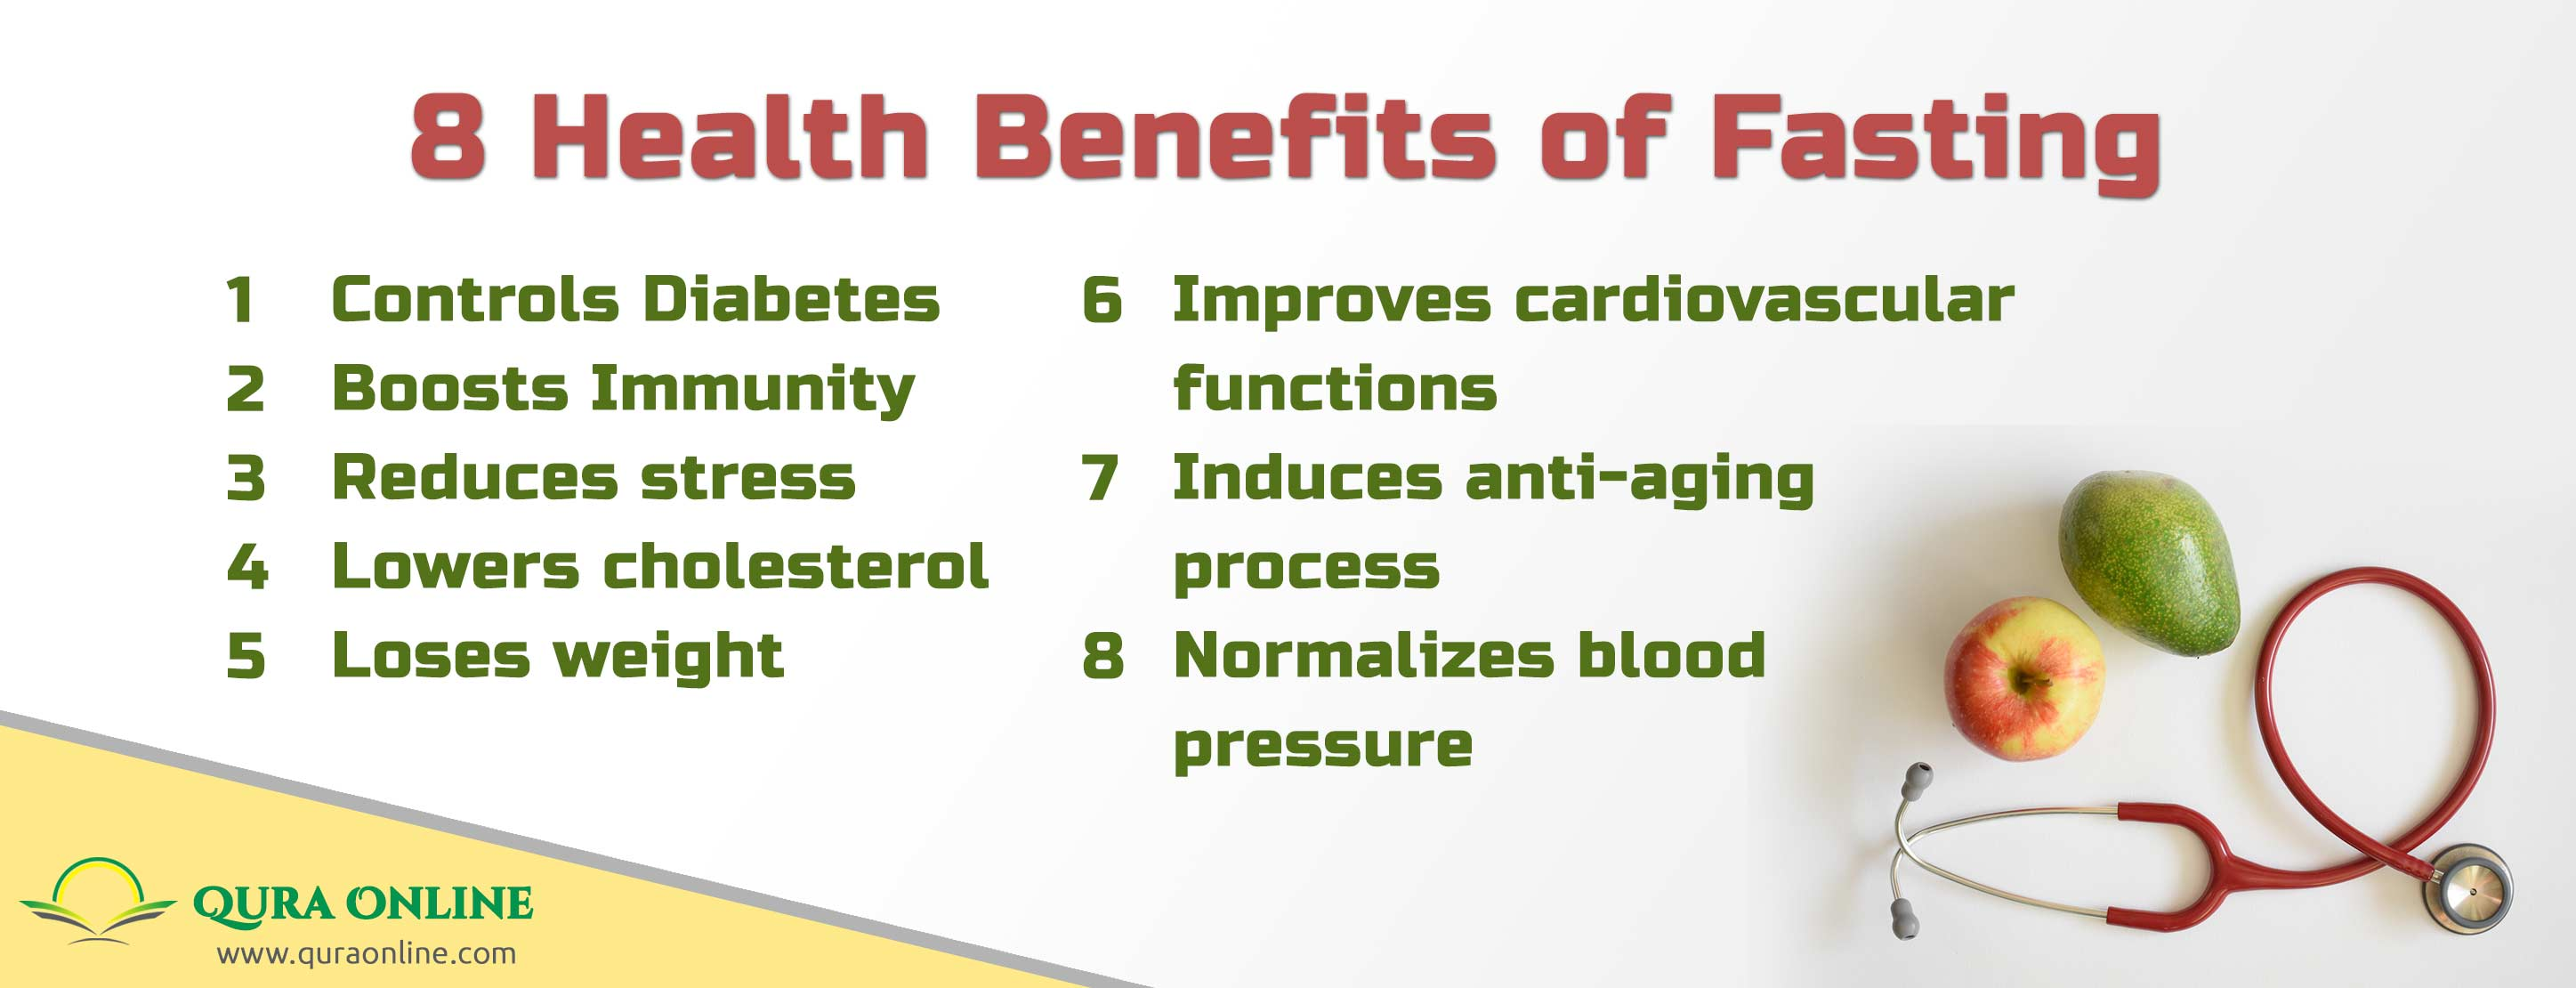 Quraonline-8 Health Benefits of Fasting